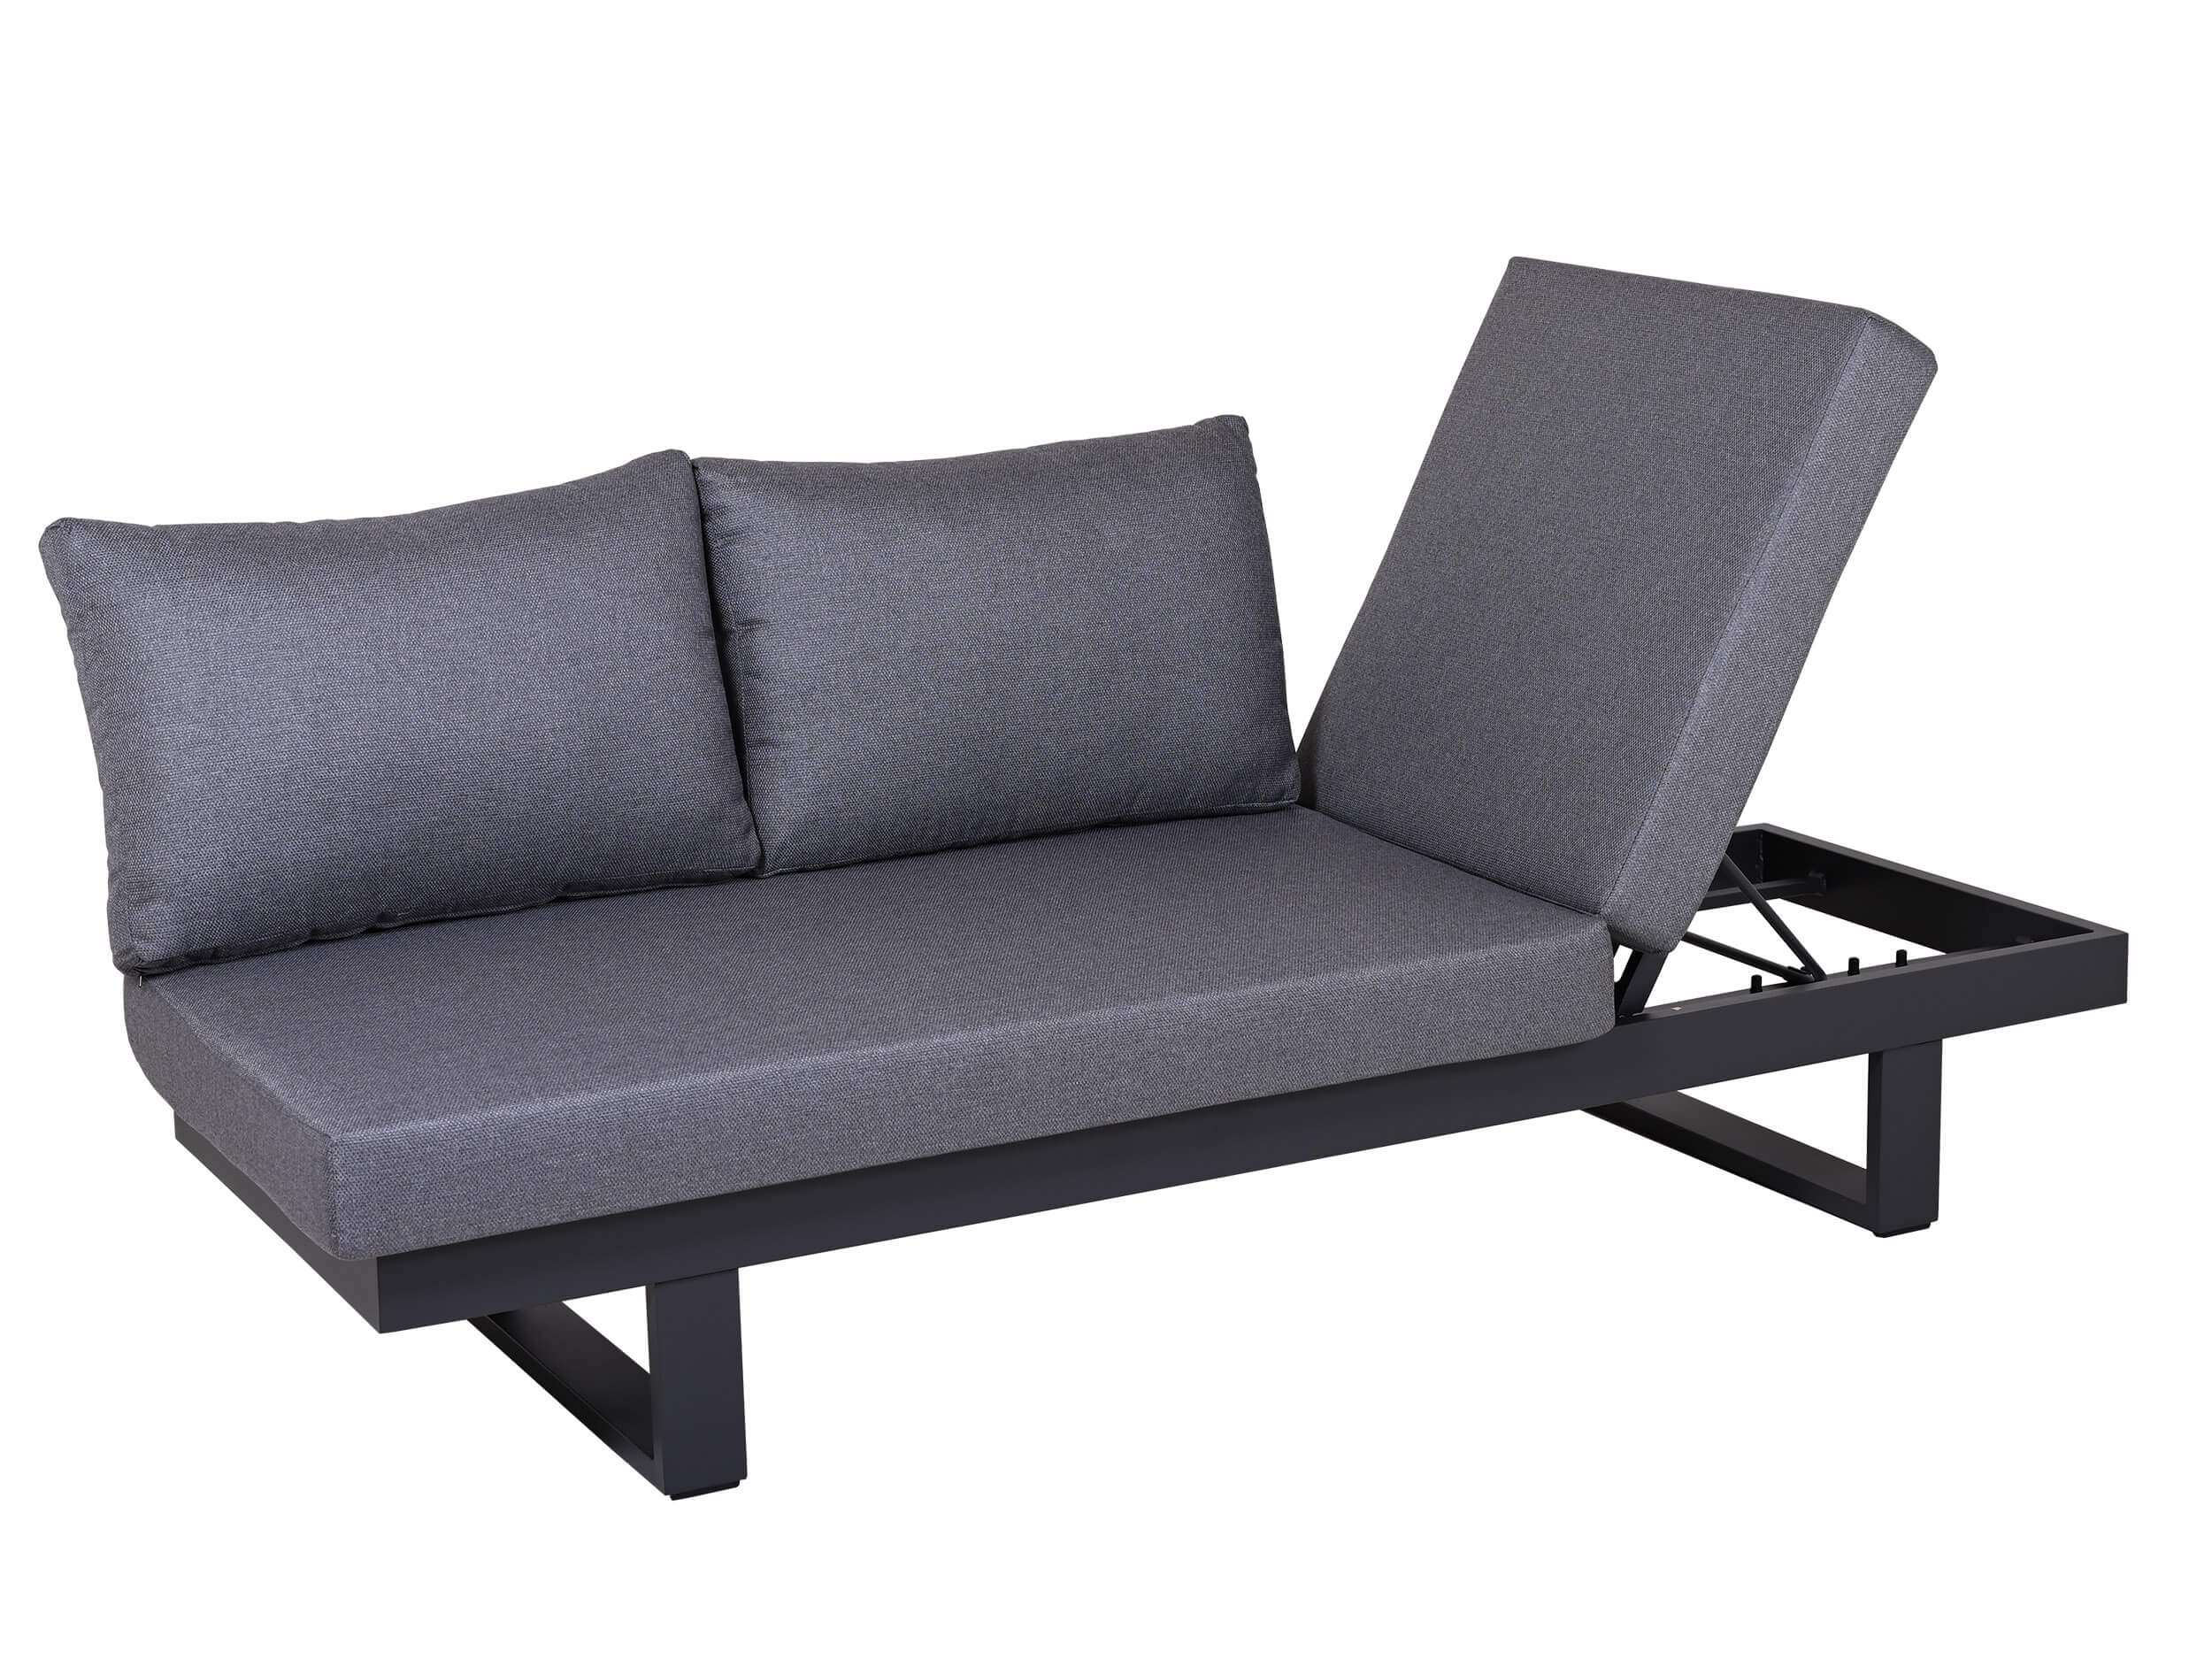 Full Size of Multifunktionale Alu Lounge Liege Sofa Vermont Gartenmbel Lnse Led Bunt Polyrattan Himolla Weiß Grau Minotti Indomo L Mit Schlaffunktion 3 Sitzer Bezug Sofa Sofa Liege